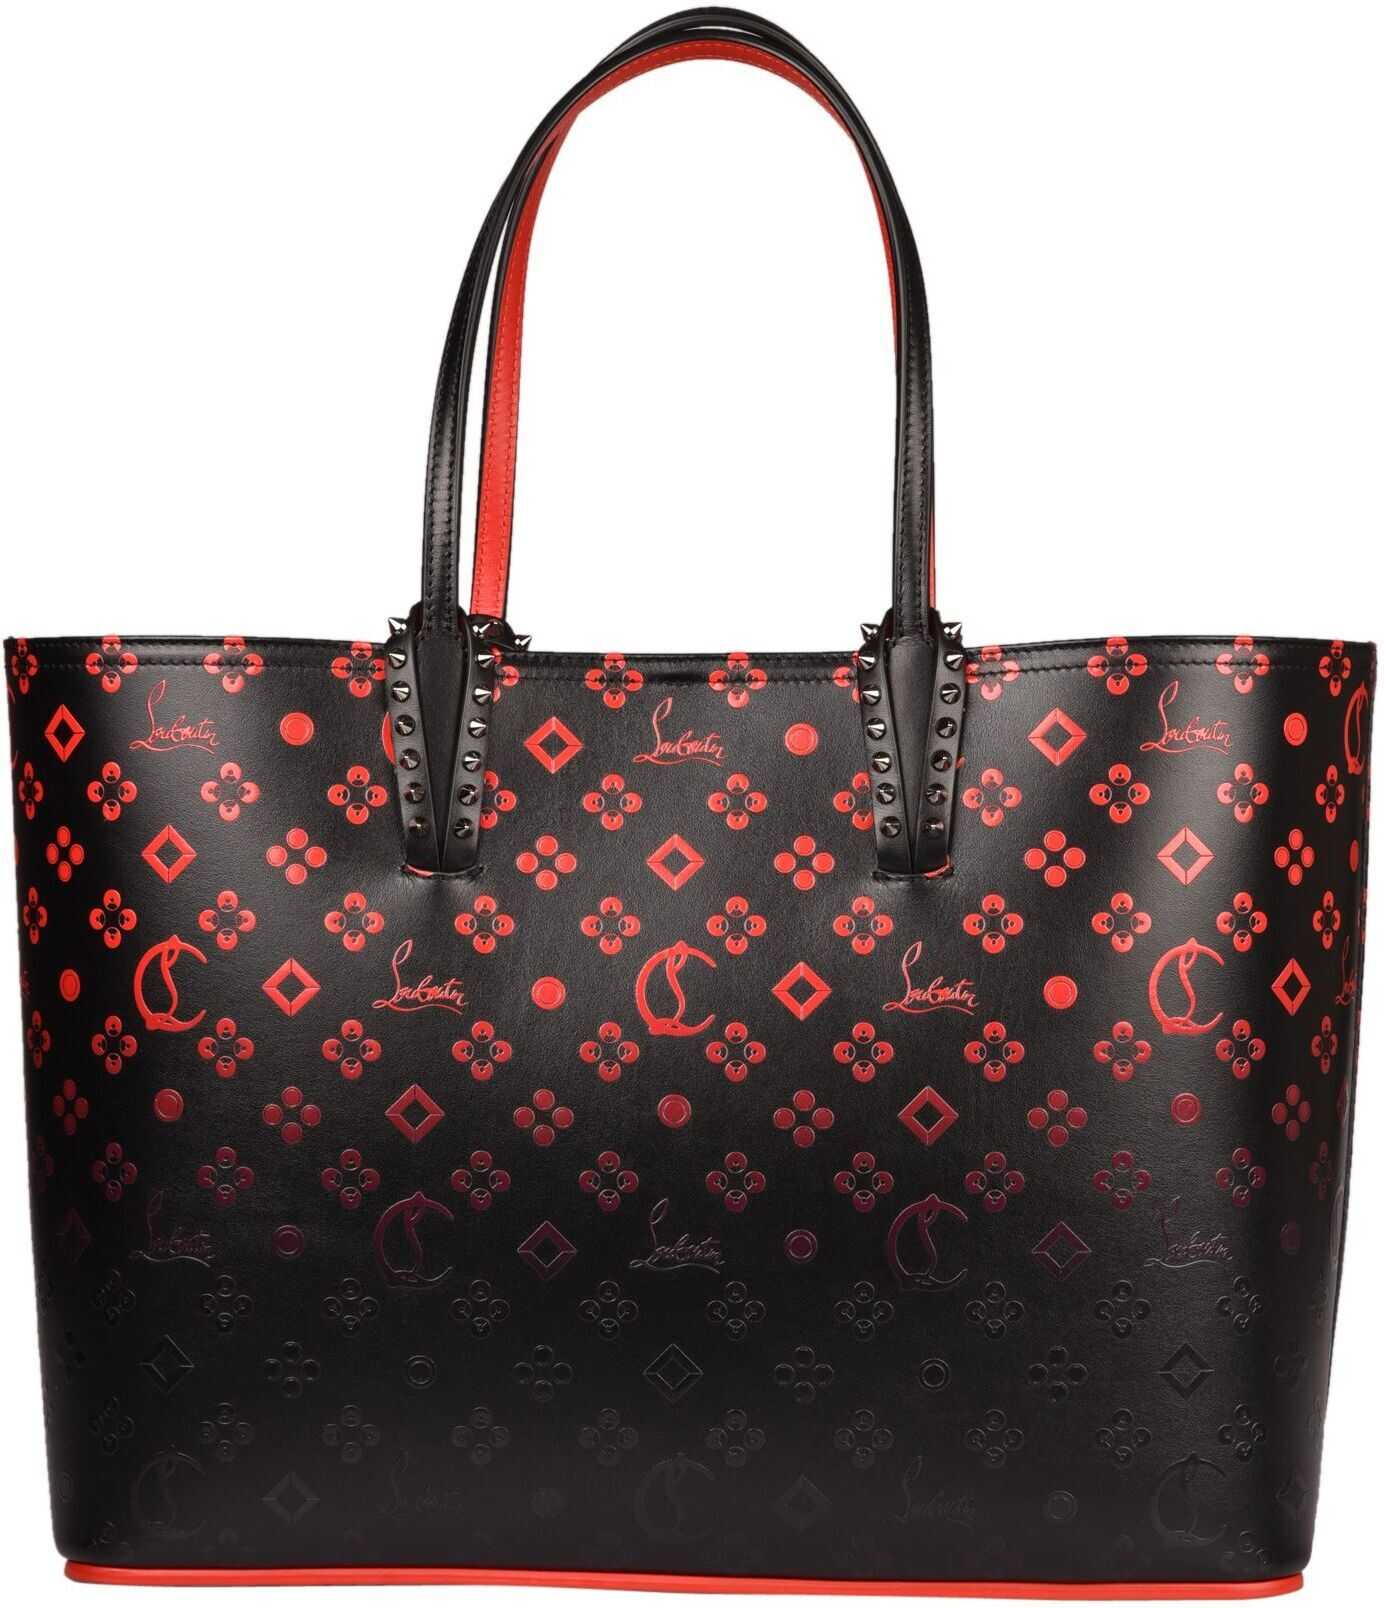 Christian Louboutin Leather Tote BLACK